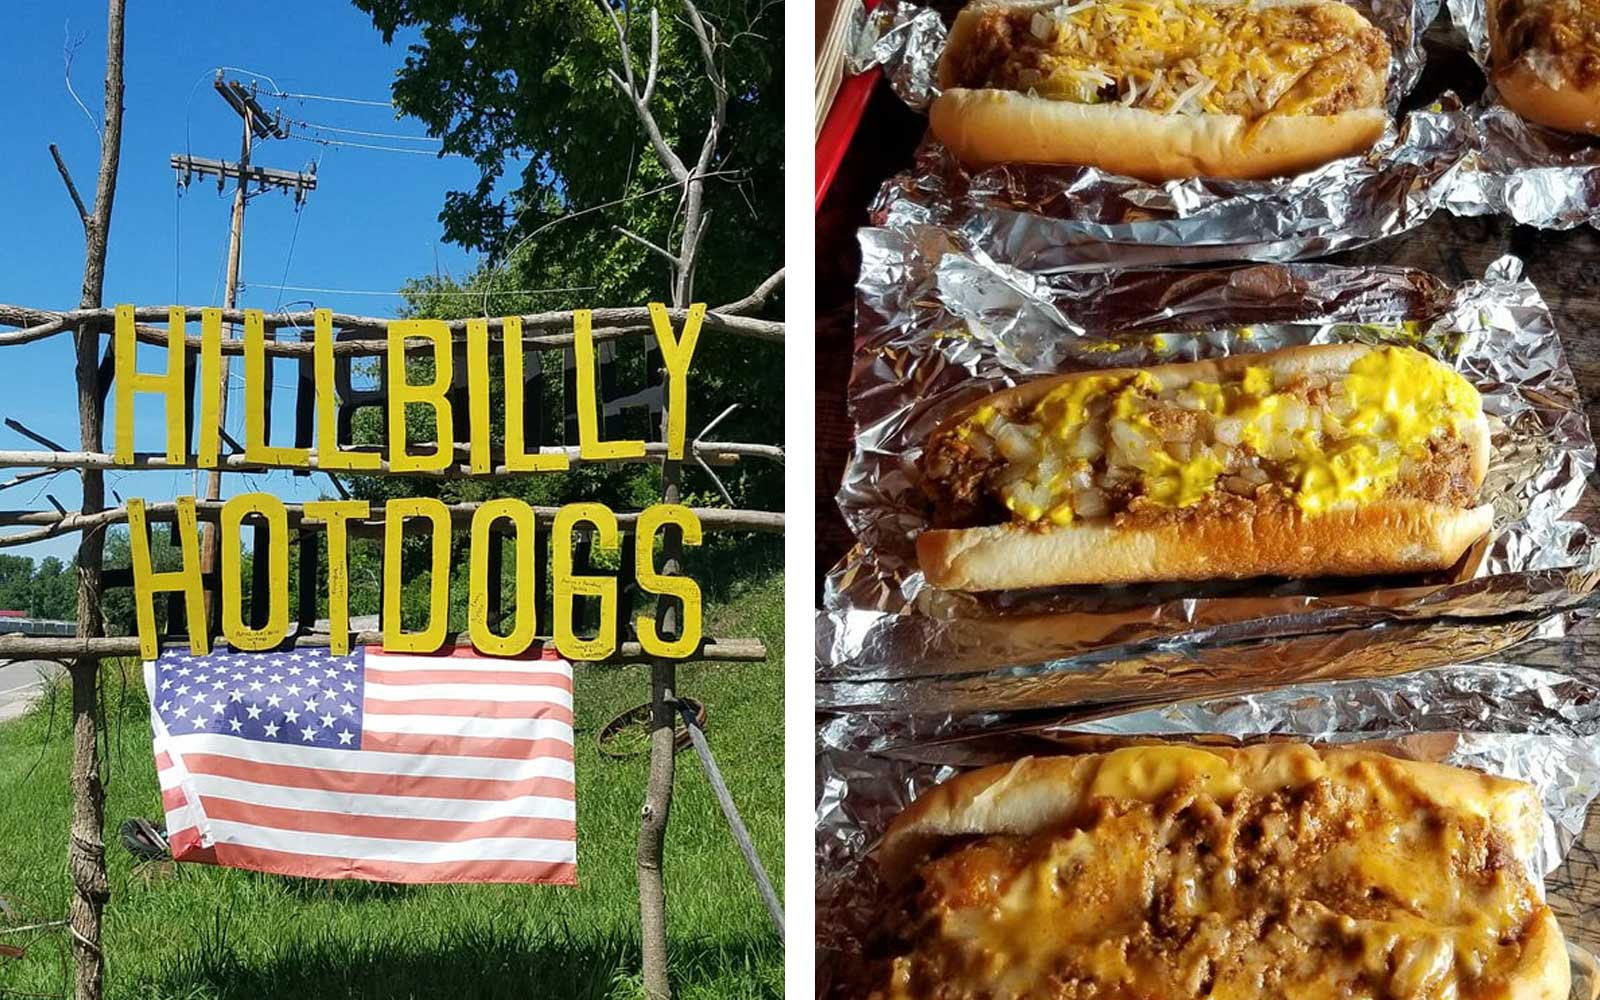 Hillbilly Hot Dogs, West Virginia